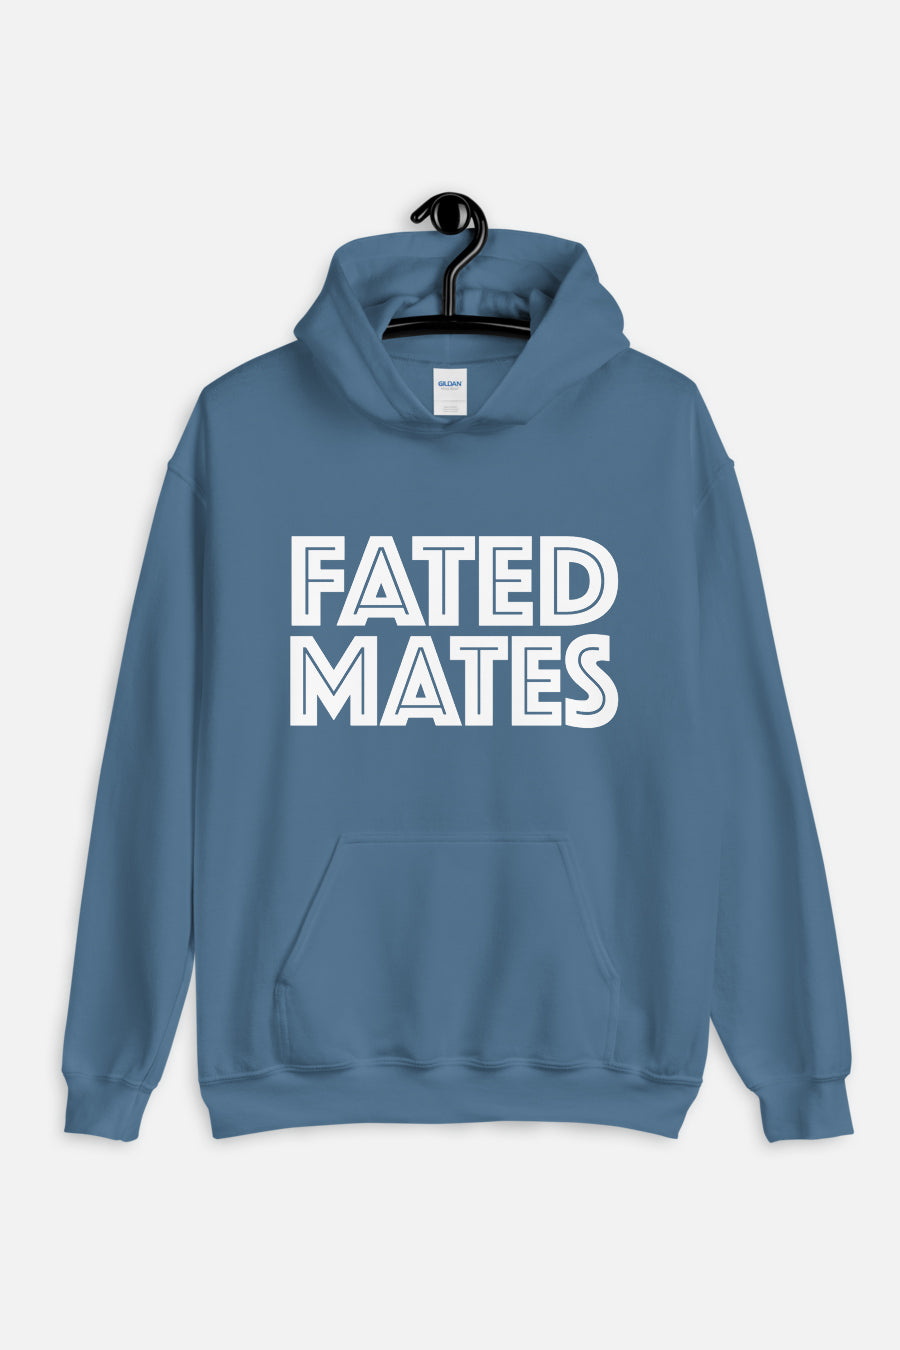 Fated Mates Unisex Hoodie